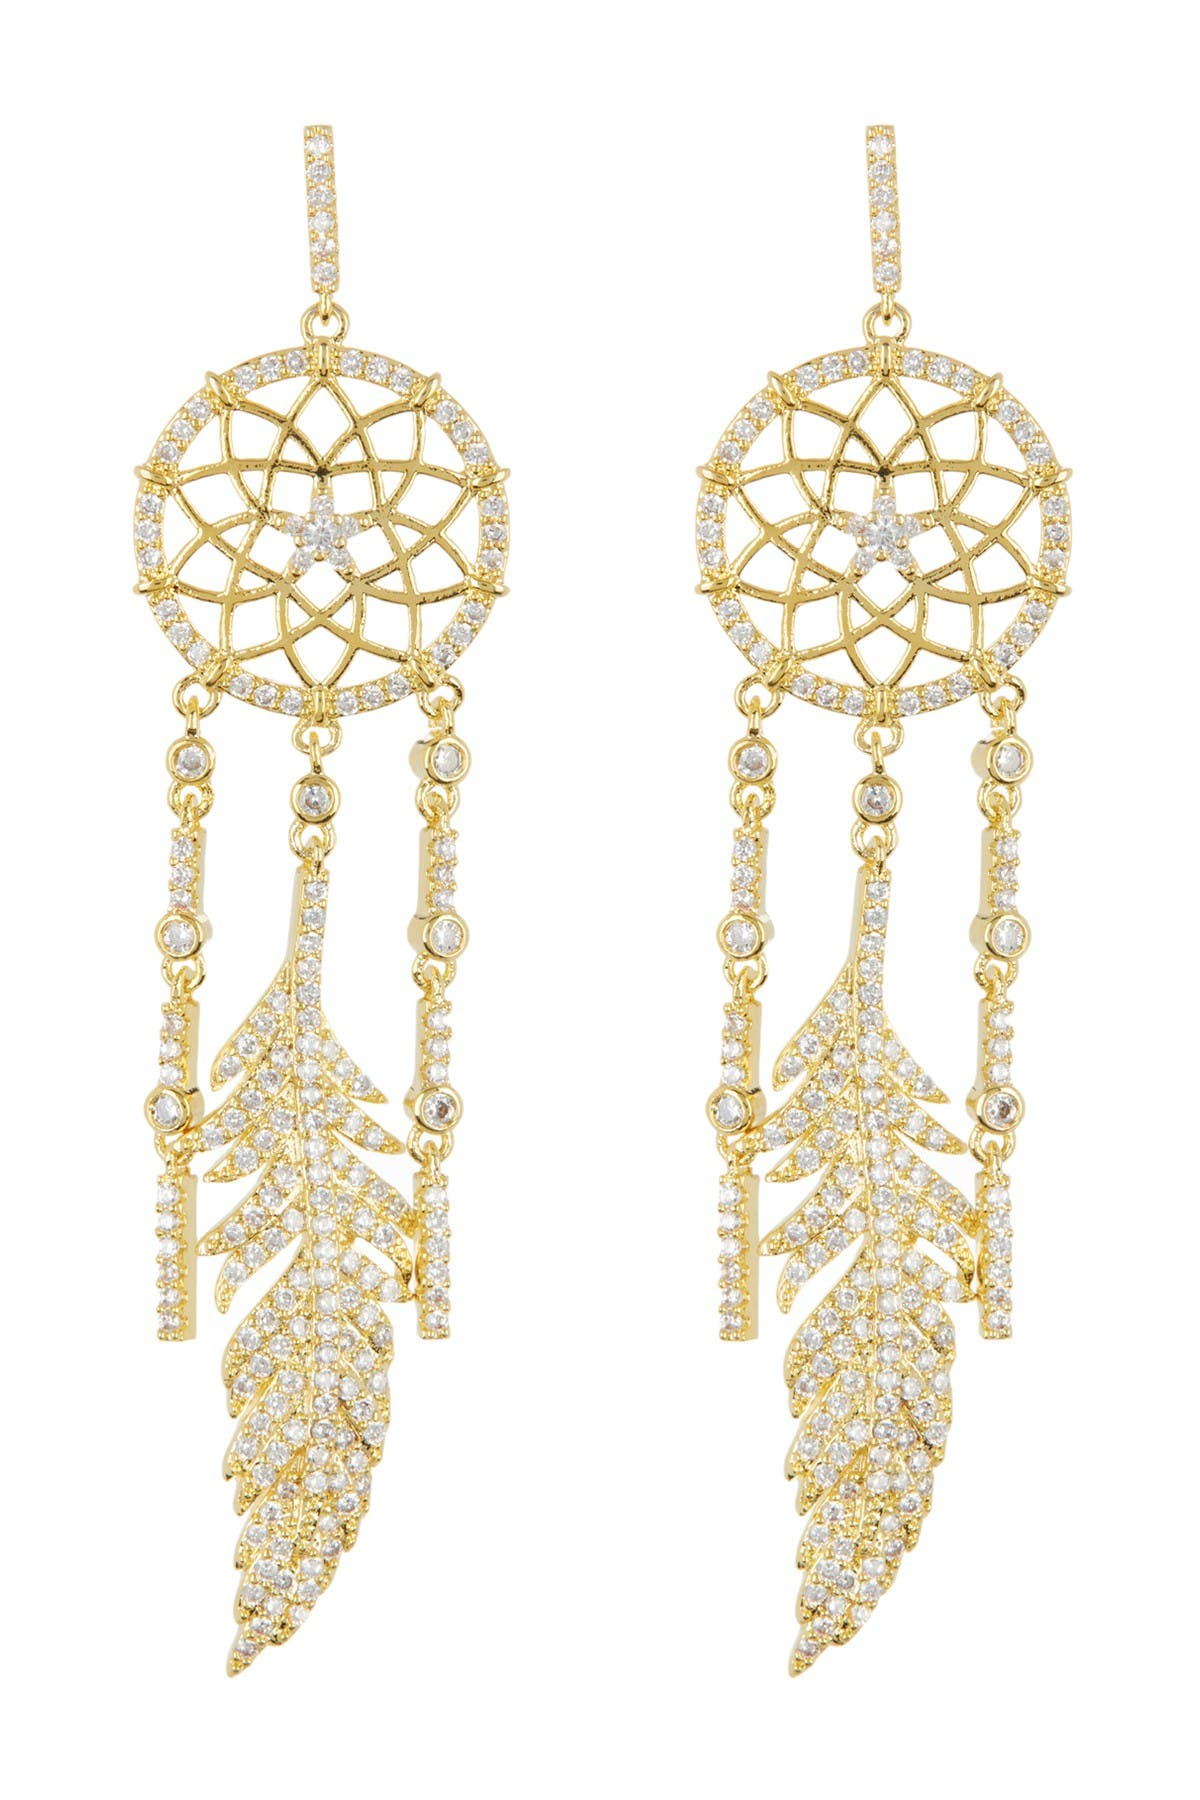 Eye Candy Los Angeles CZ Crystal Dreamer Catcher Golden Drop Earrings at Nordstrom Rack